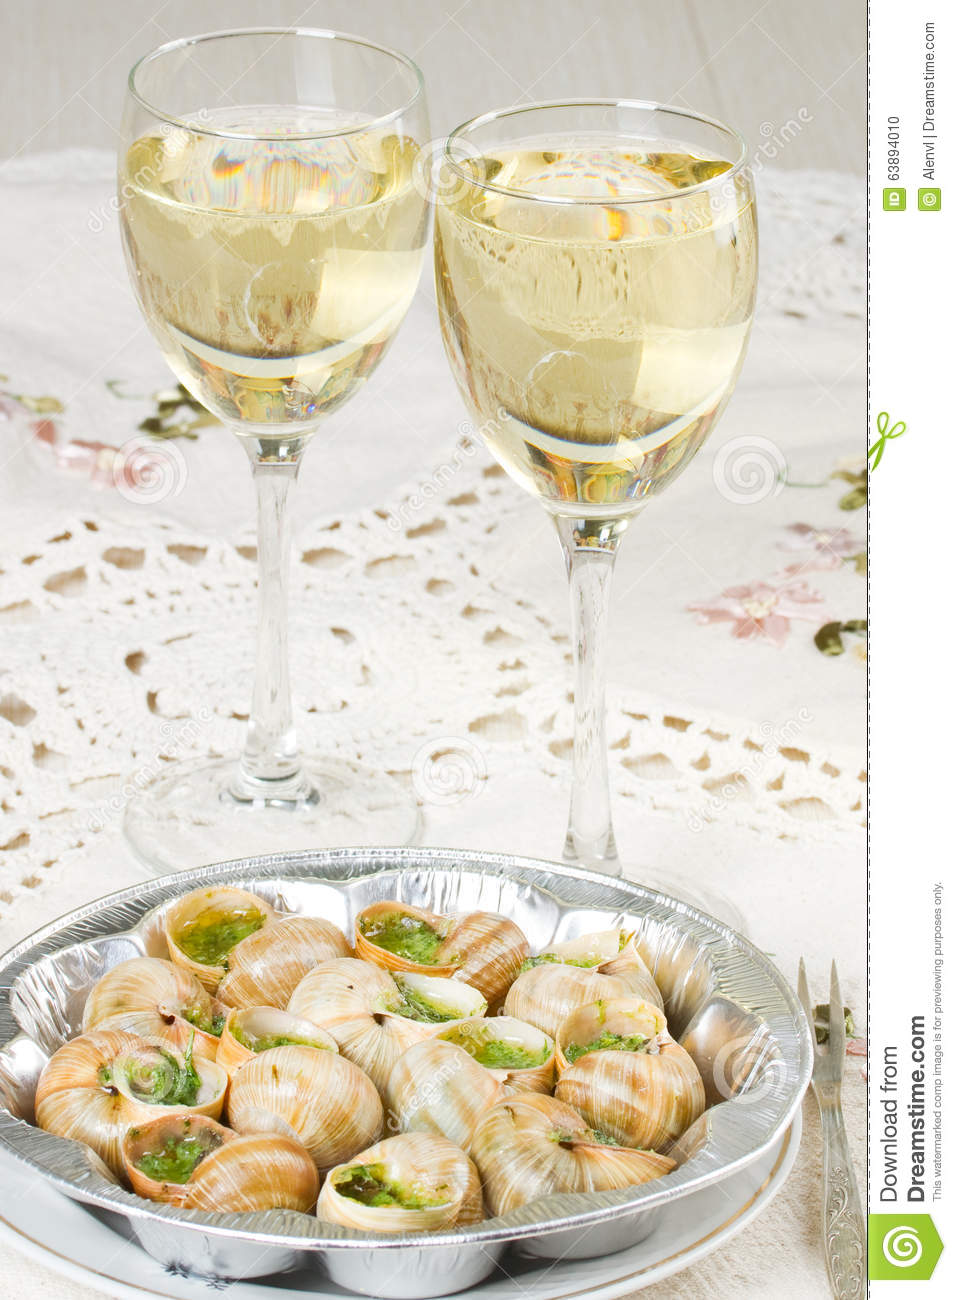 escargots de vin blanc et de raisin photo stock image du roman gourmet 63894010. Black Bedroom Furniture Sets. Home Design Ideas